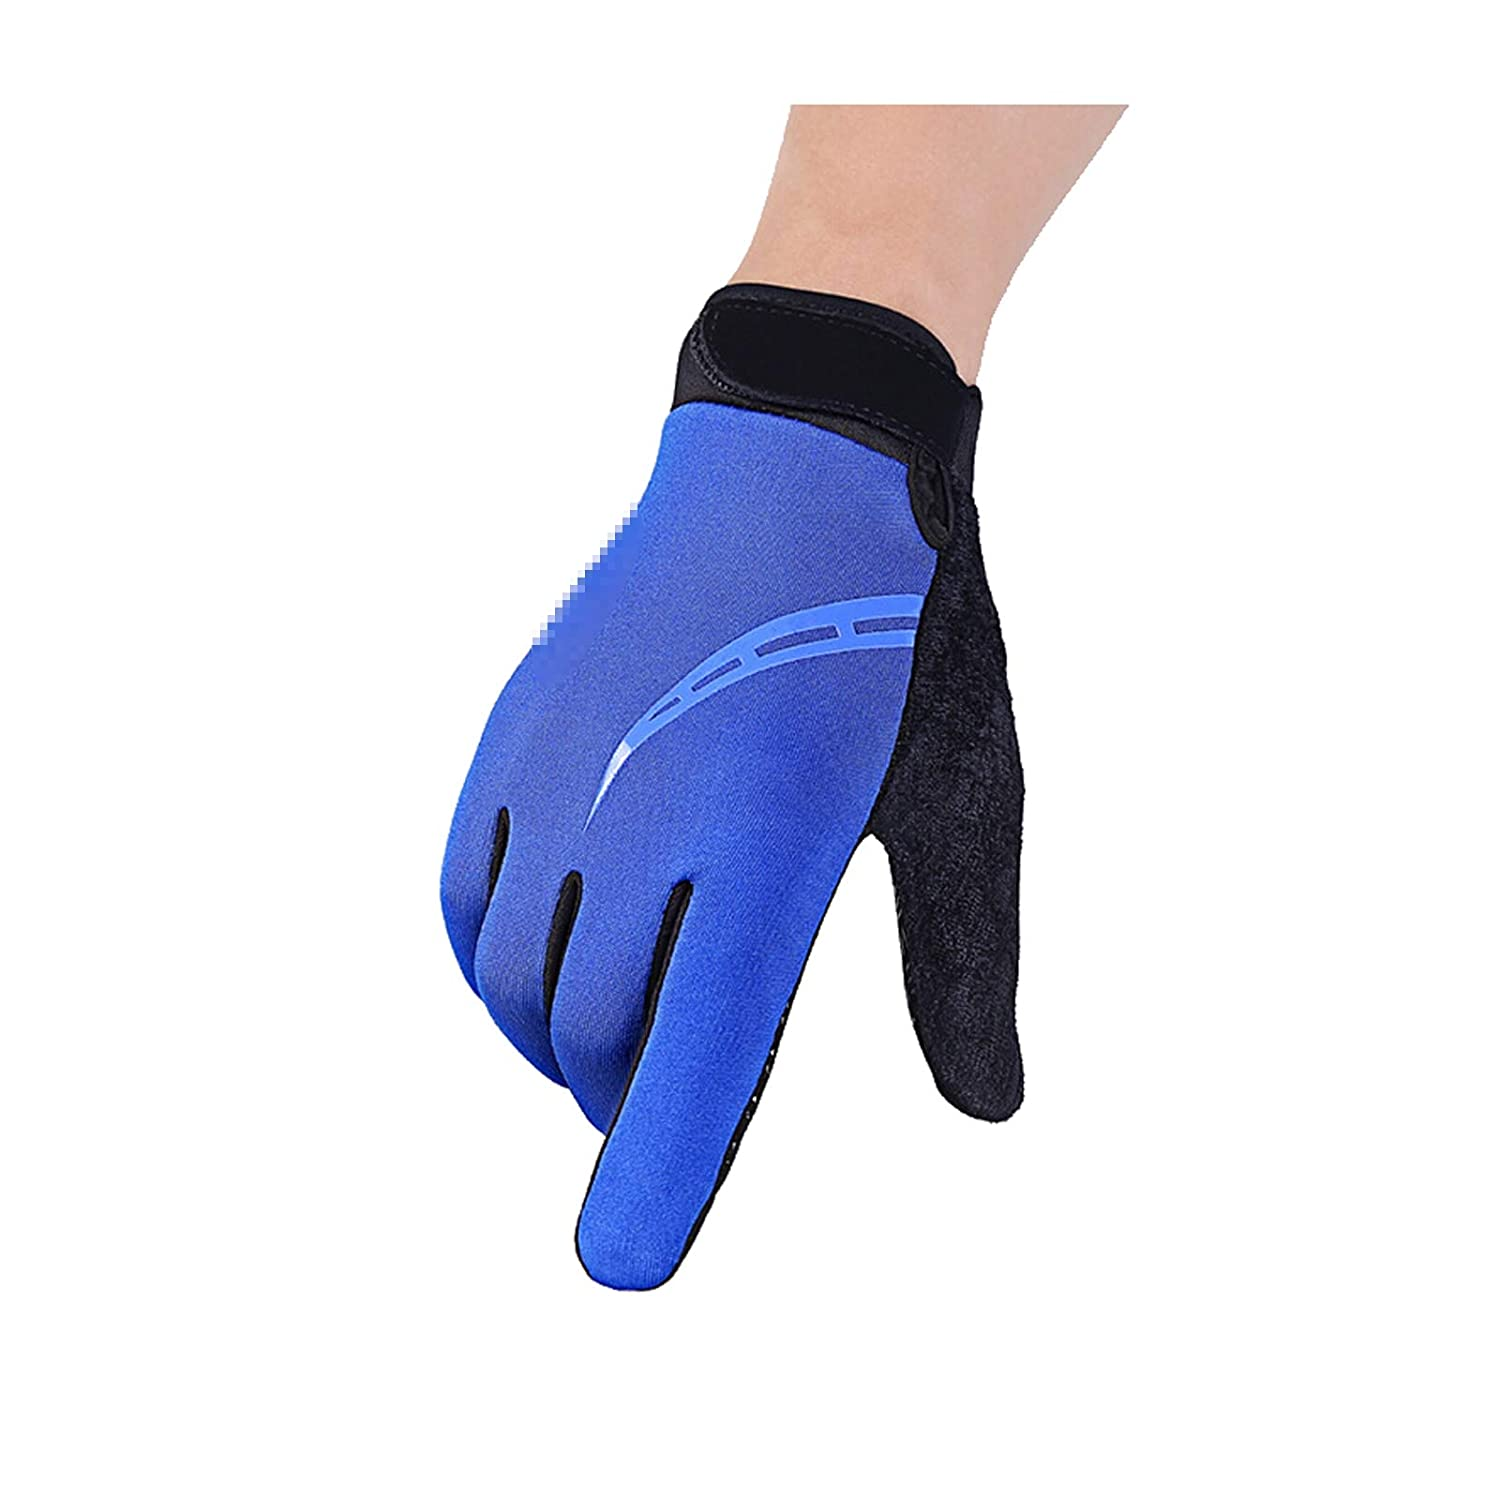 Blisfille Guantes Hombre Smartphone Guantes Moto Blancos Guantes ...